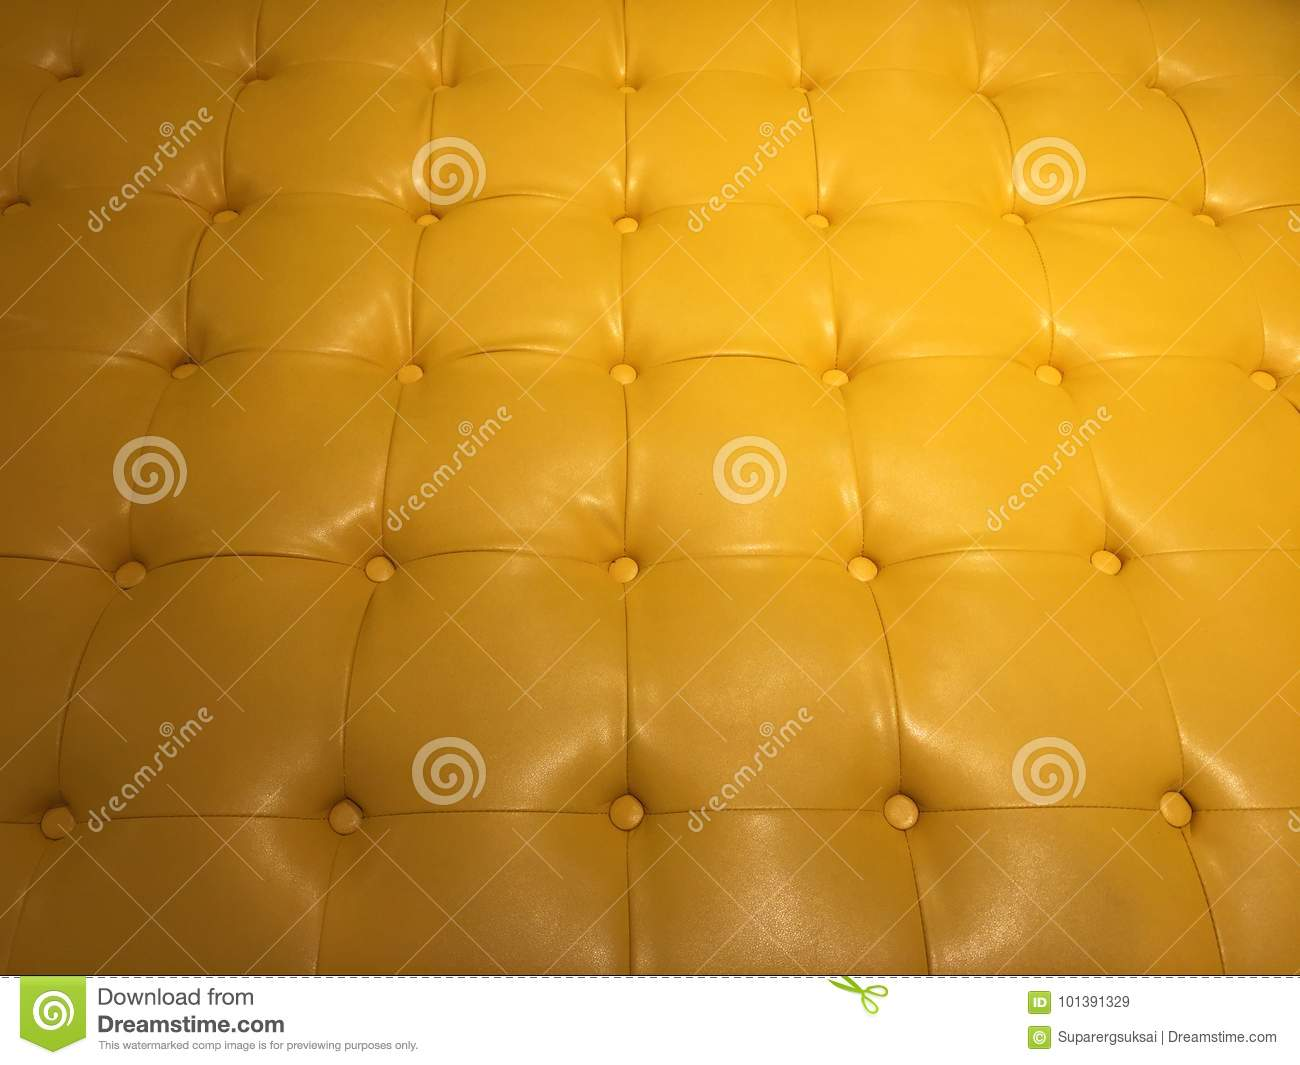 Yellow Synthetic Leather Couch Stock Illustration - Image: 101391329